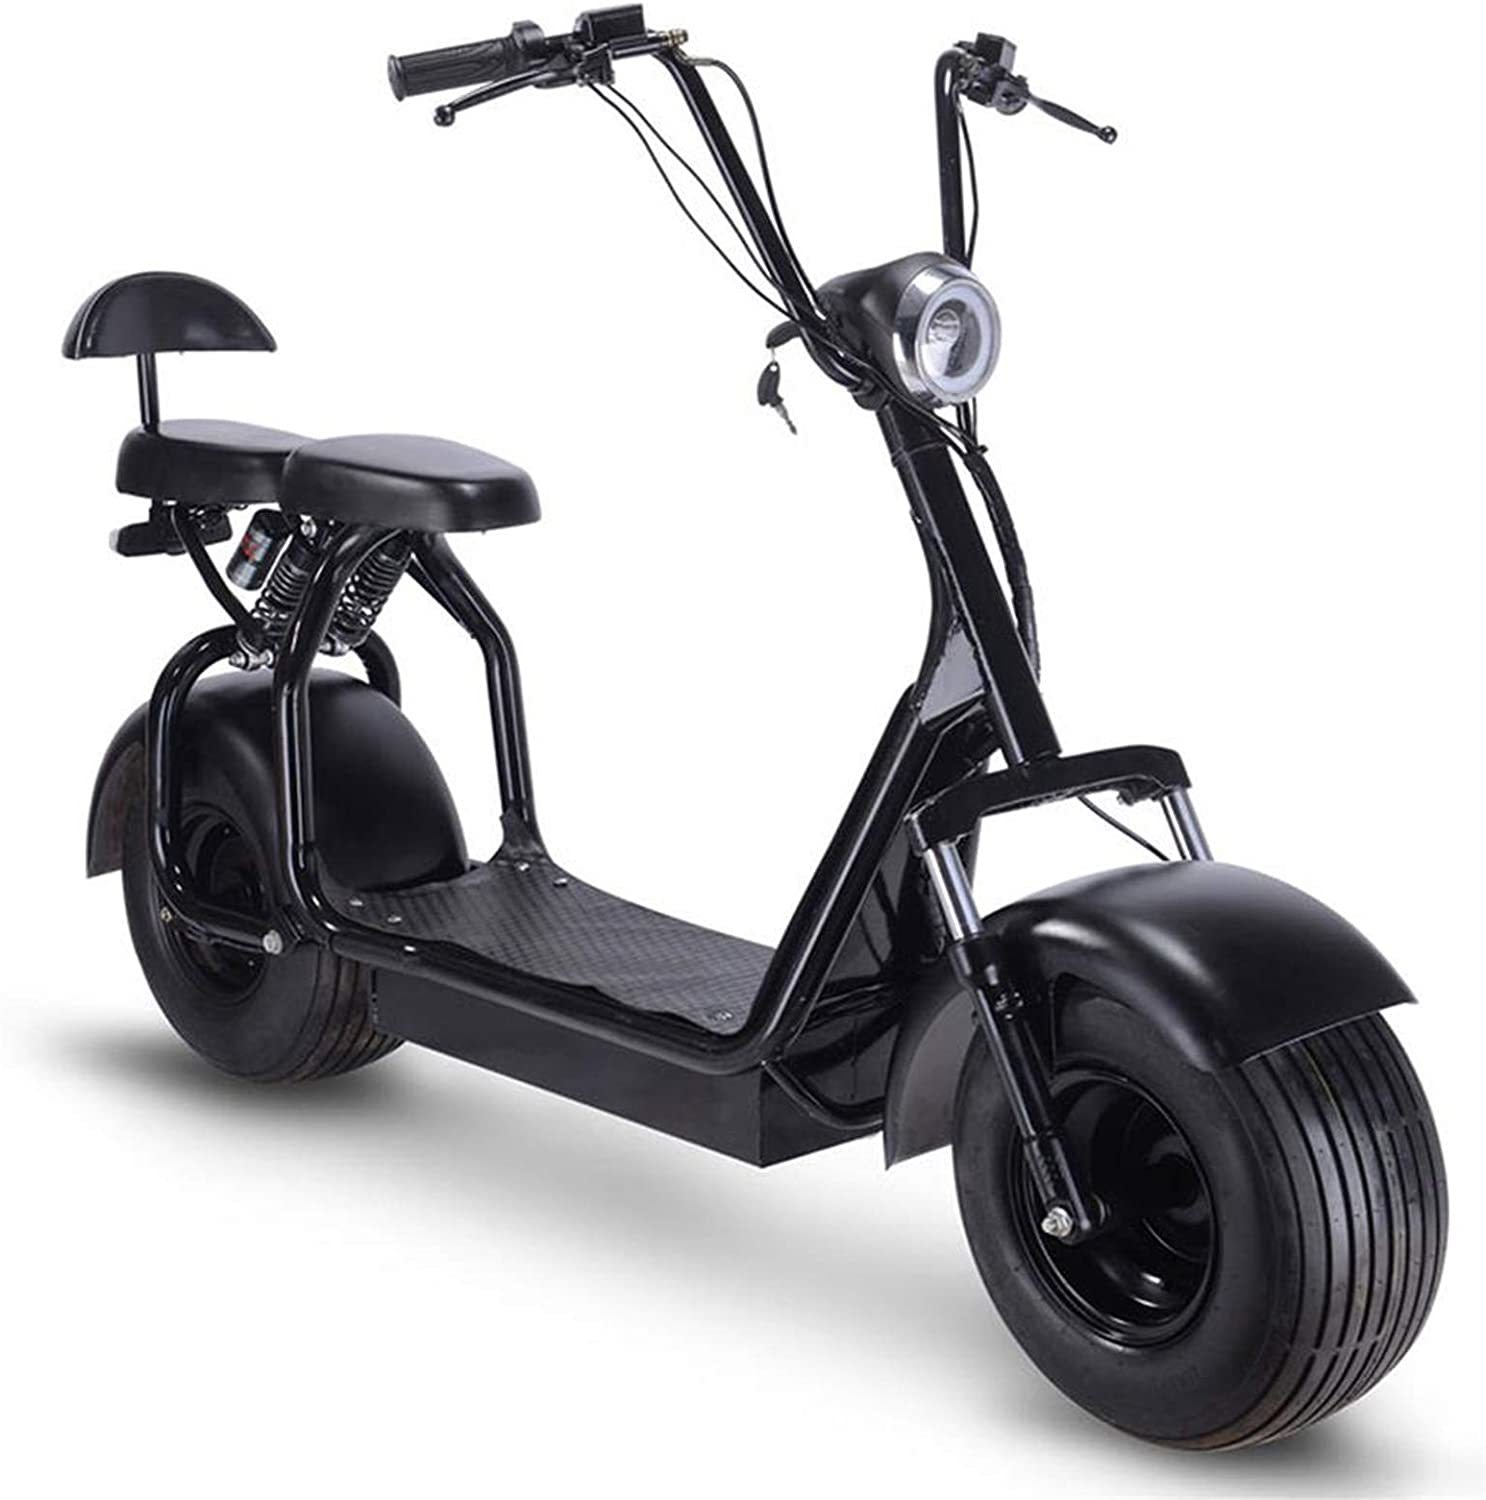 1. TOXOZERS Adult Citycoco 60v 1000W Fat Tire Scooter